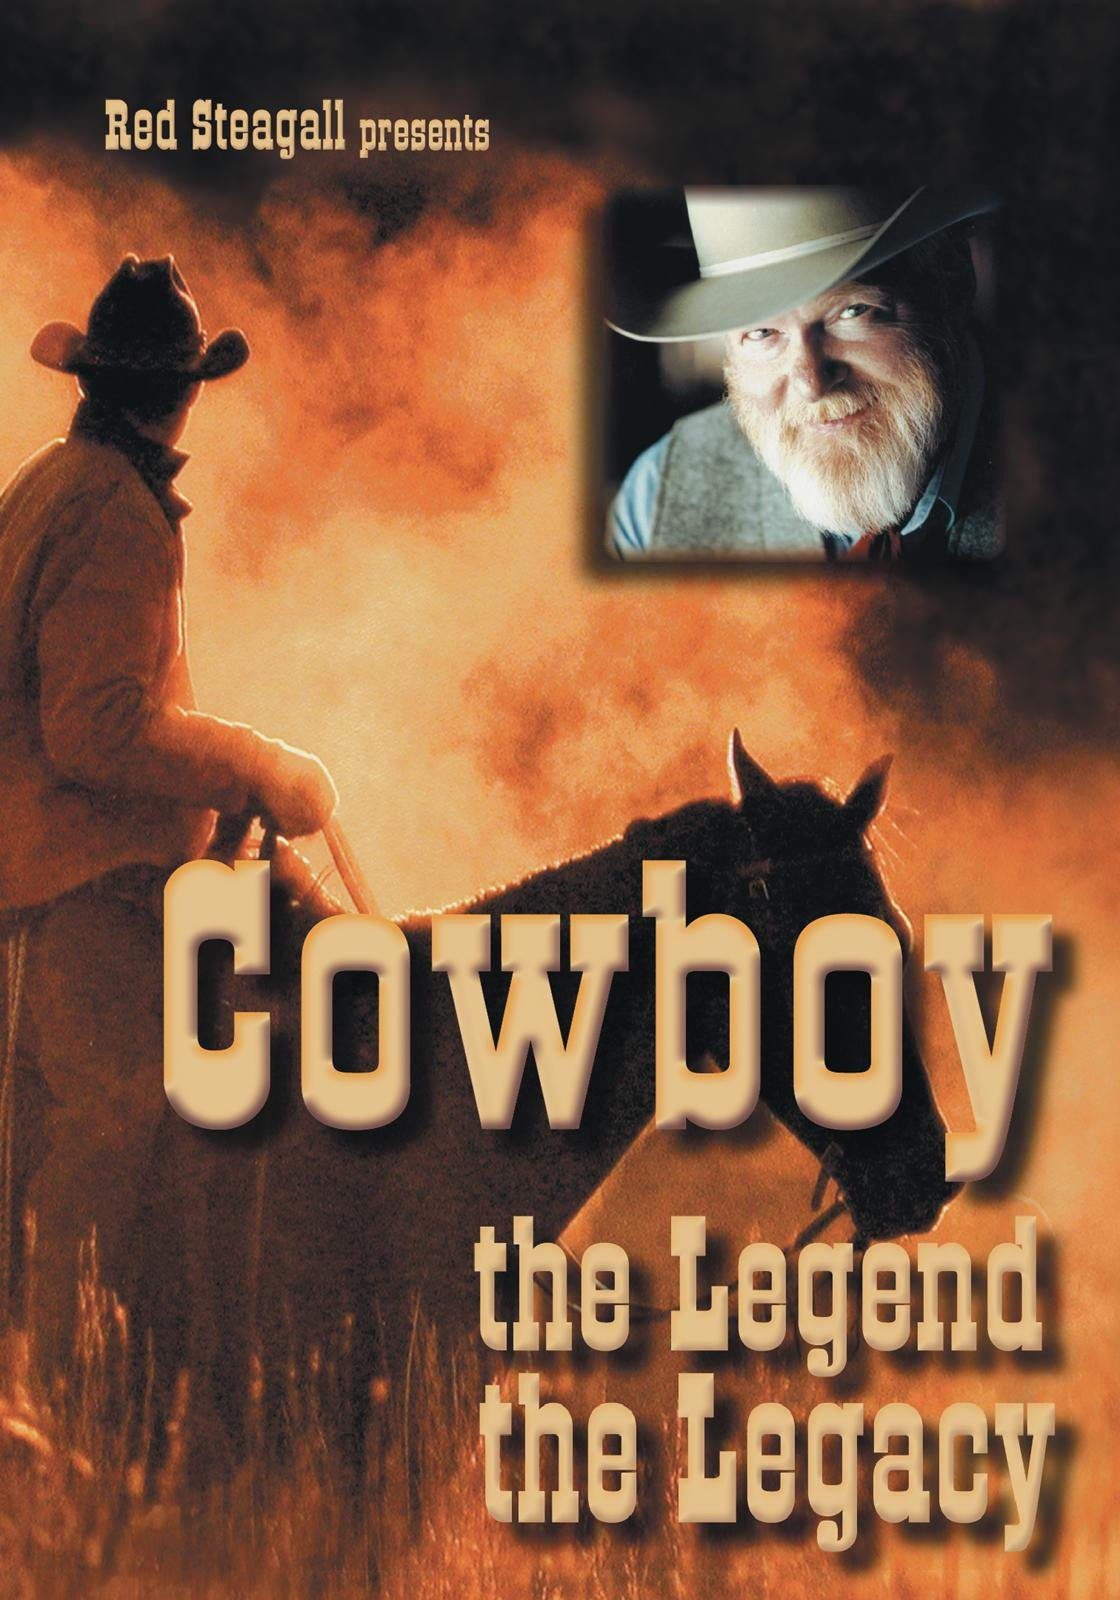 Red Steagall Presents: Cowboy